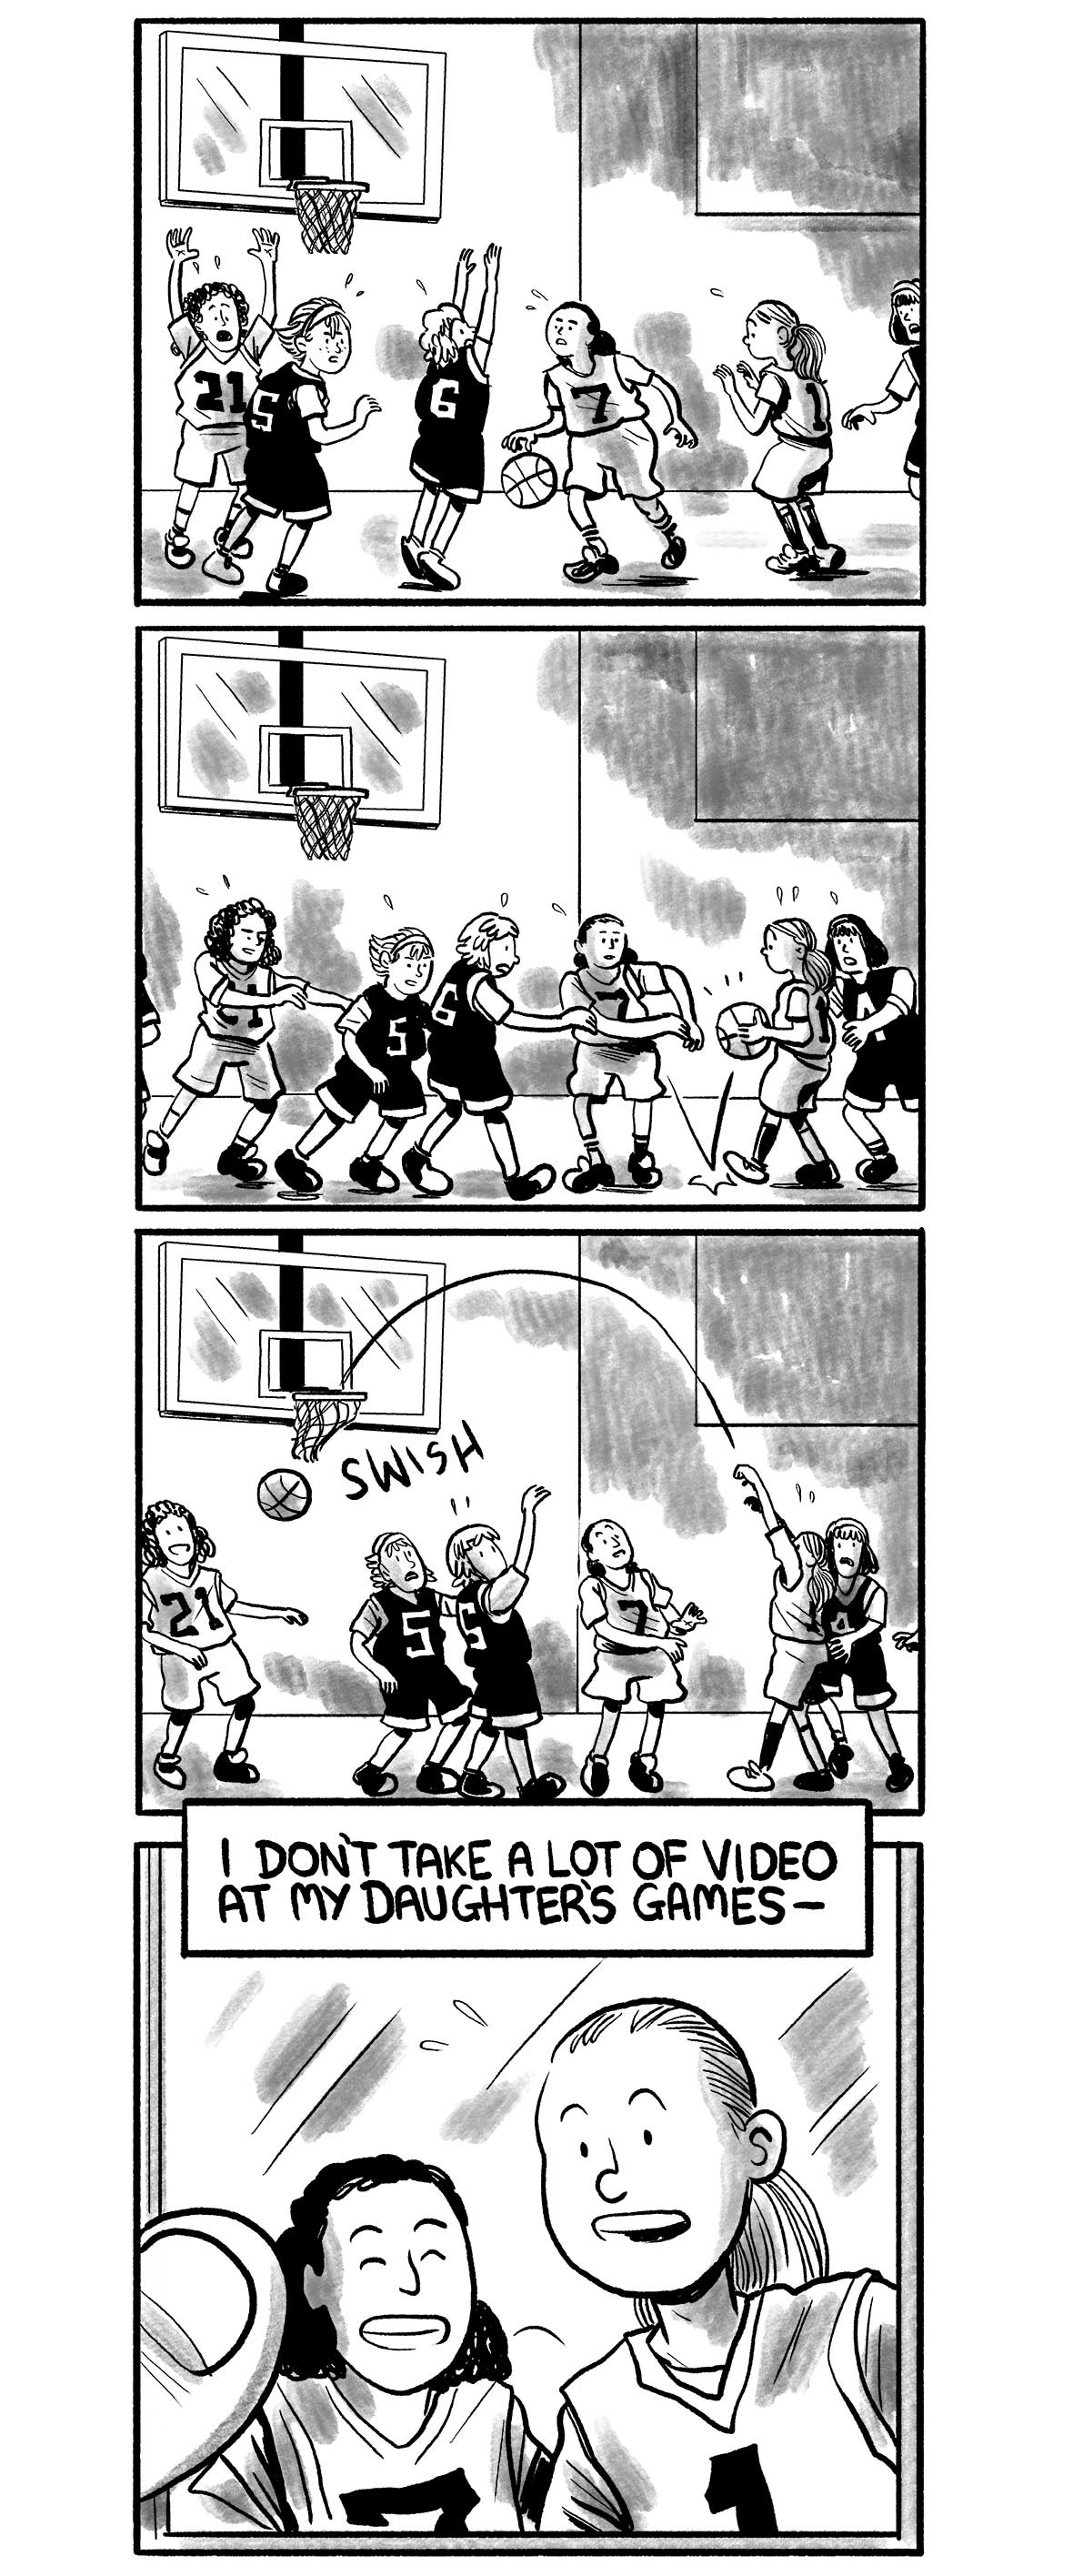 "A kid's basketball game, No. 7 dribbles under heavy pressure from the opposing team. She passes the ball to No. 1. No. 1 takes a shot, it's a swish.  The narrator says: ""I don't take a lot of video at my daughter's games -""  The narrator's mobile phone displays a still frame of his daughter smiling."